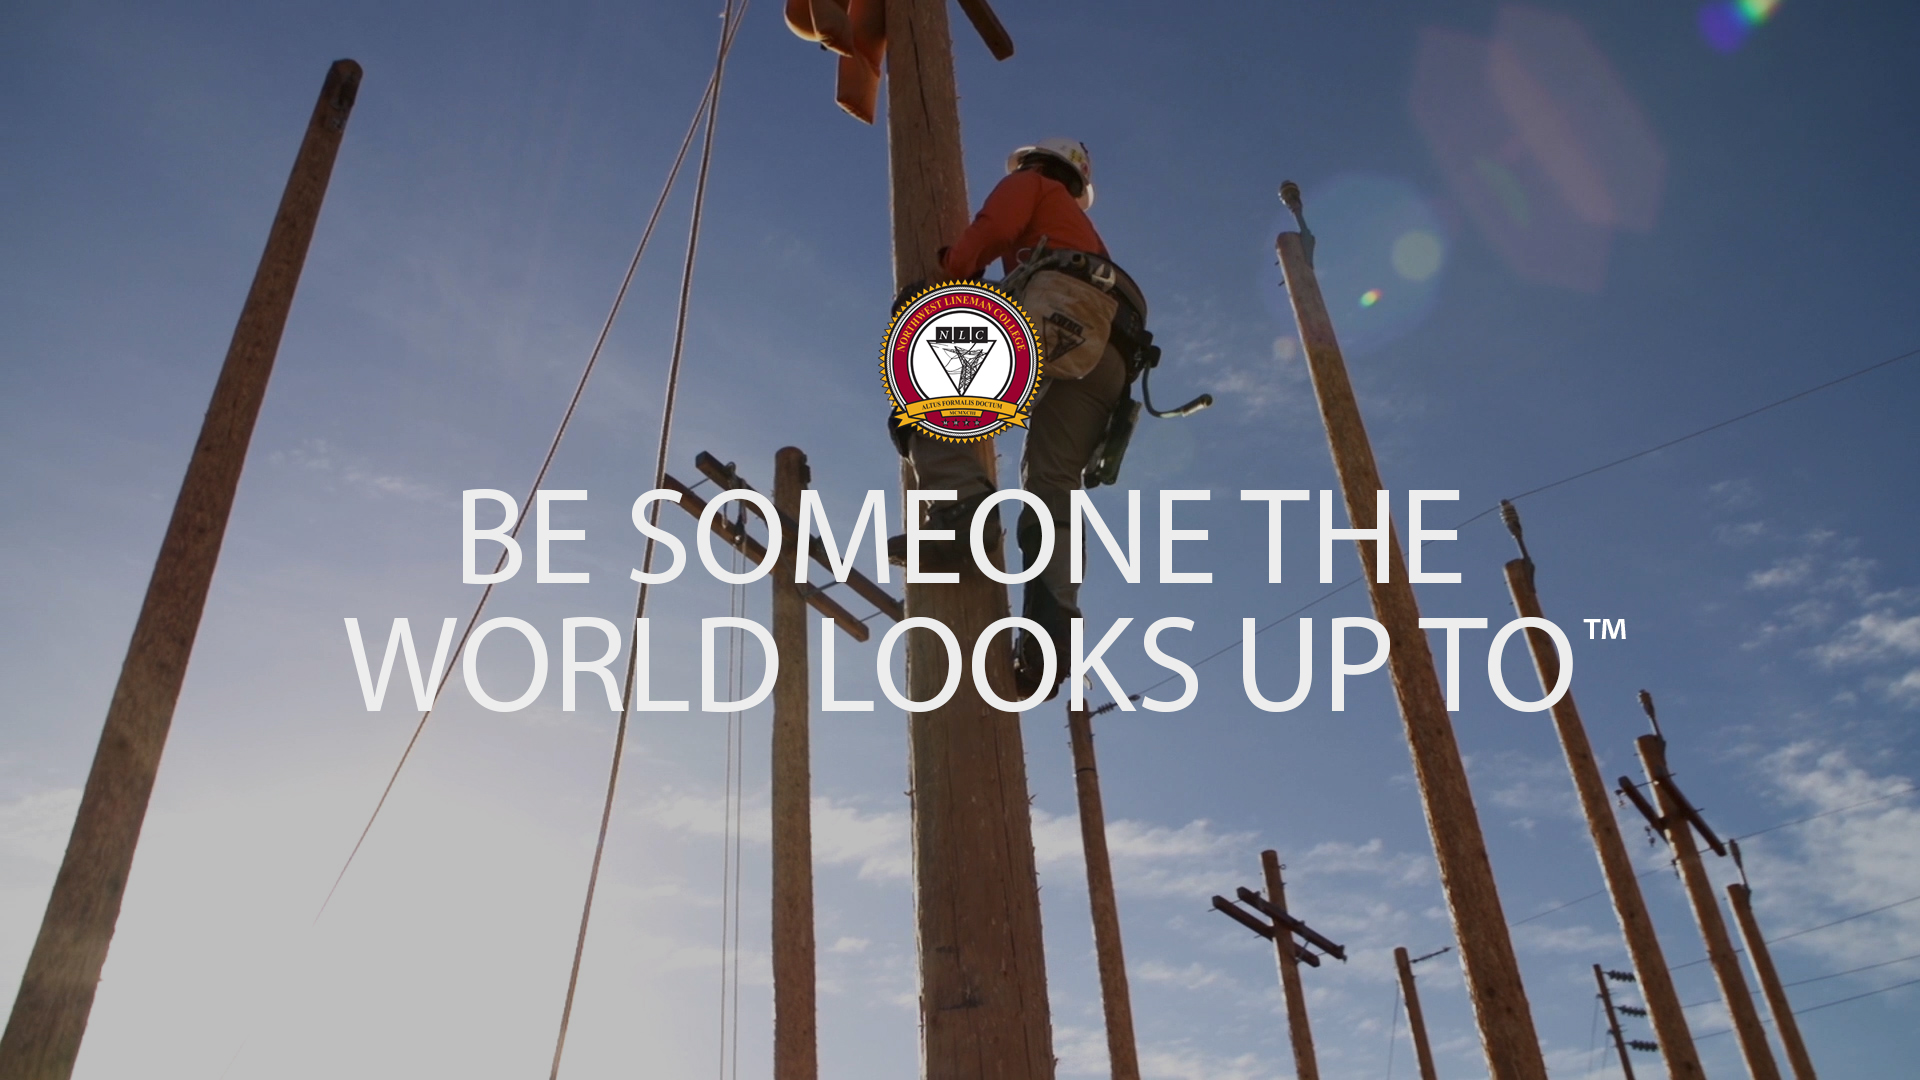 NLC: Be Someone the World Looks Up To